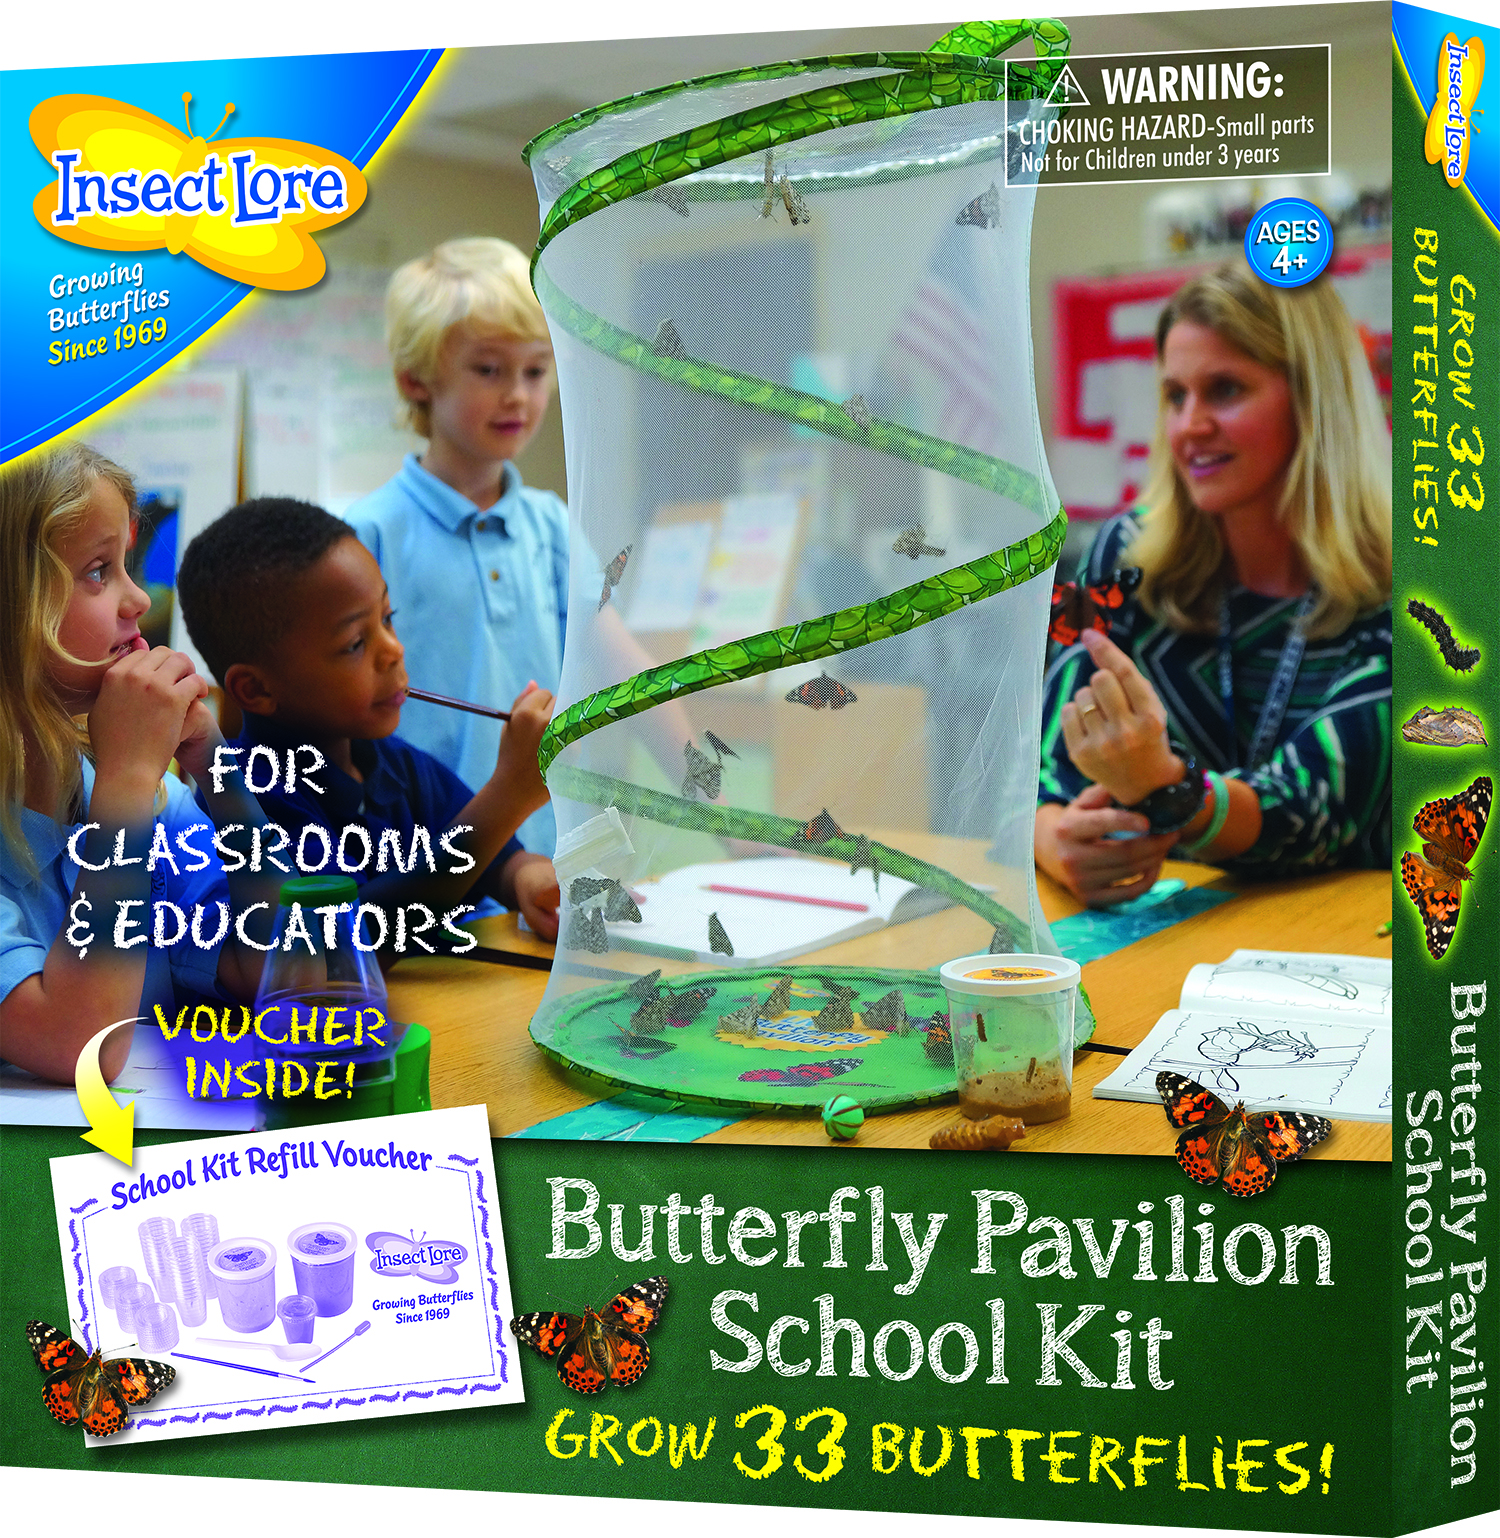 Butterfly Pavilion School Kit by Insect Lore